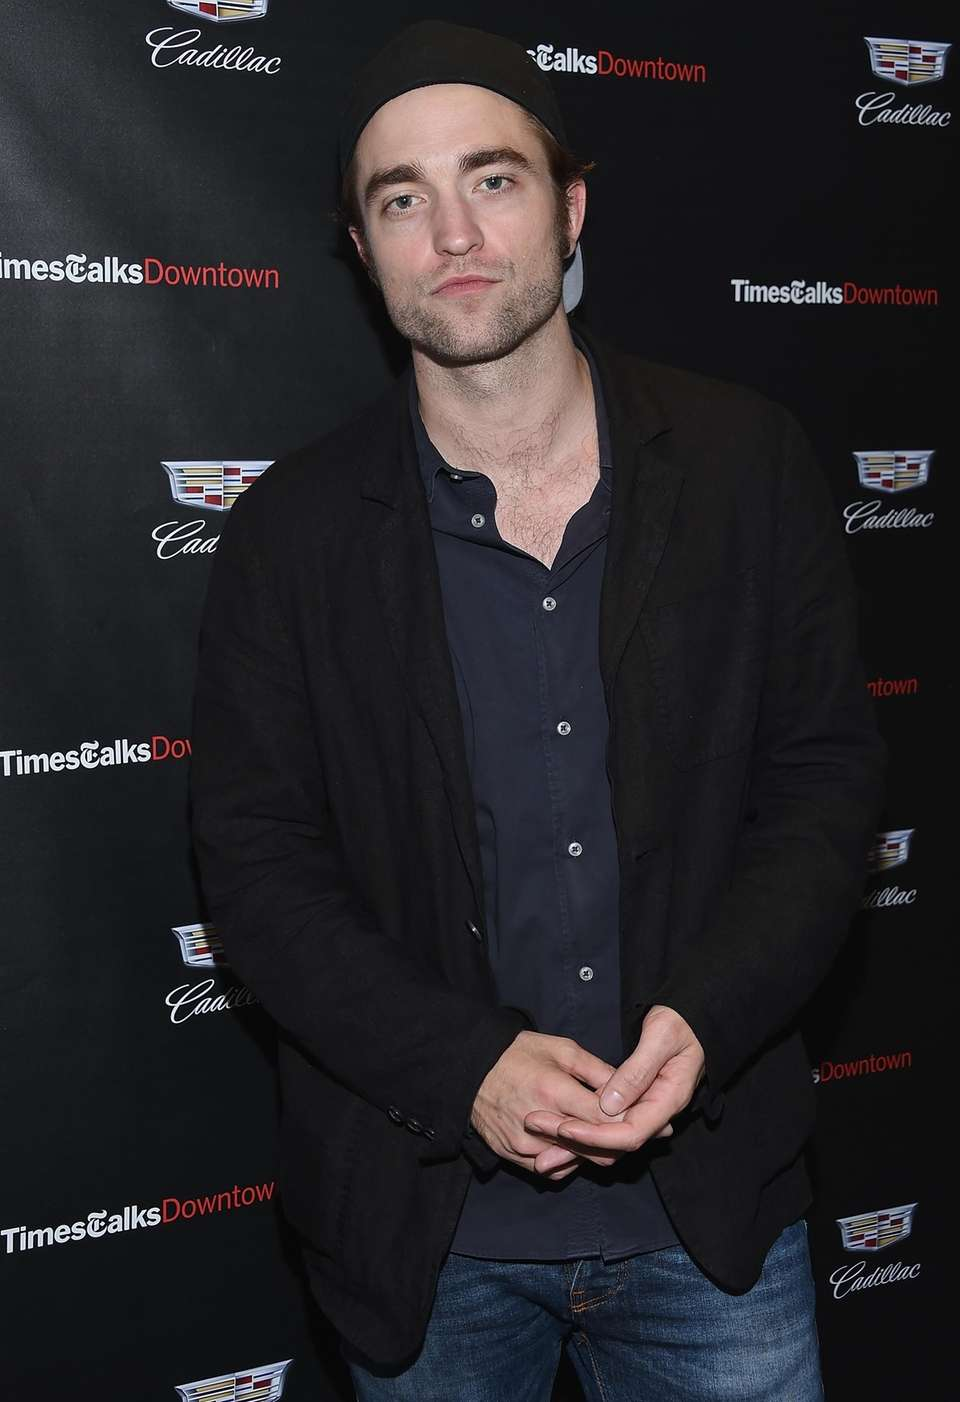 Robert Pattinson attends an event for the film